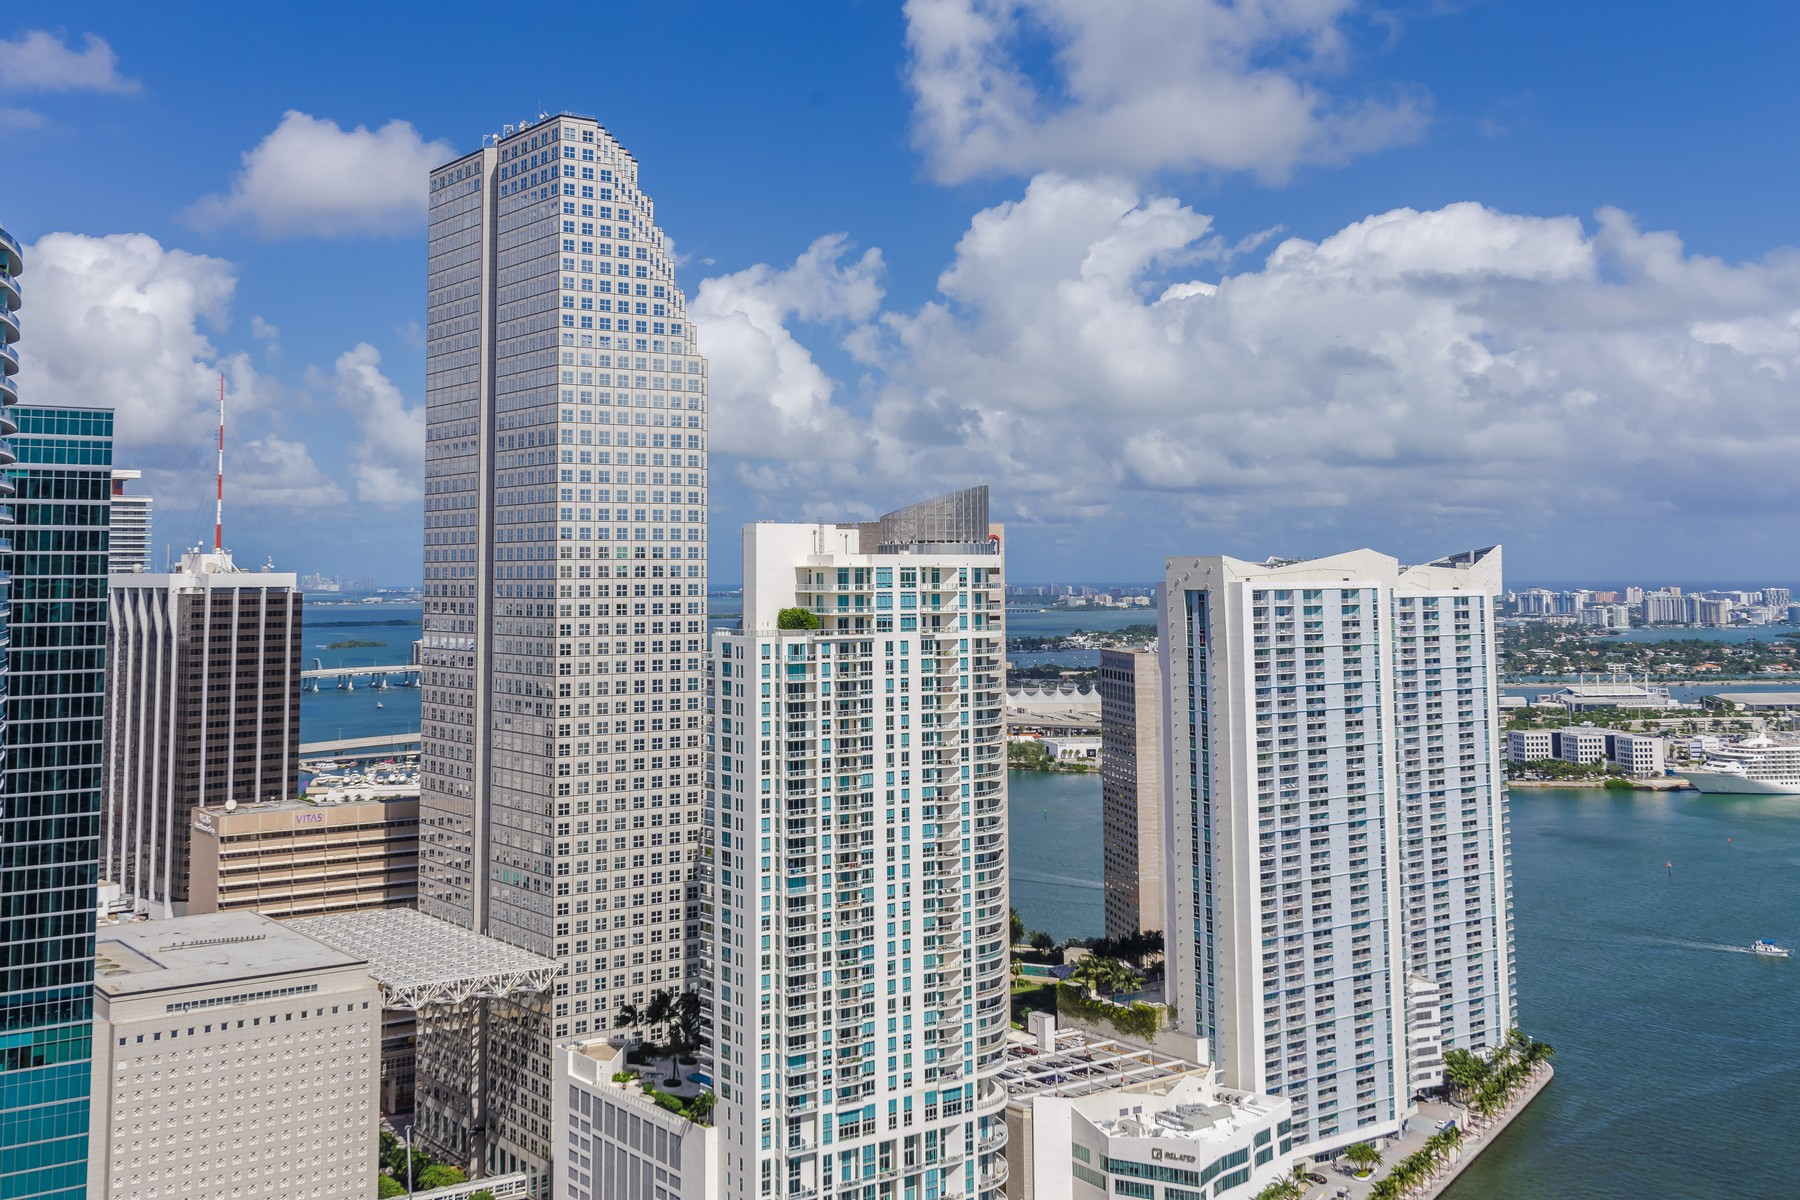 Condominium for Sale at 485 Brickell Av #4303 485 Brickell Av 4303 Miami Beach, Florida, 33131 United States